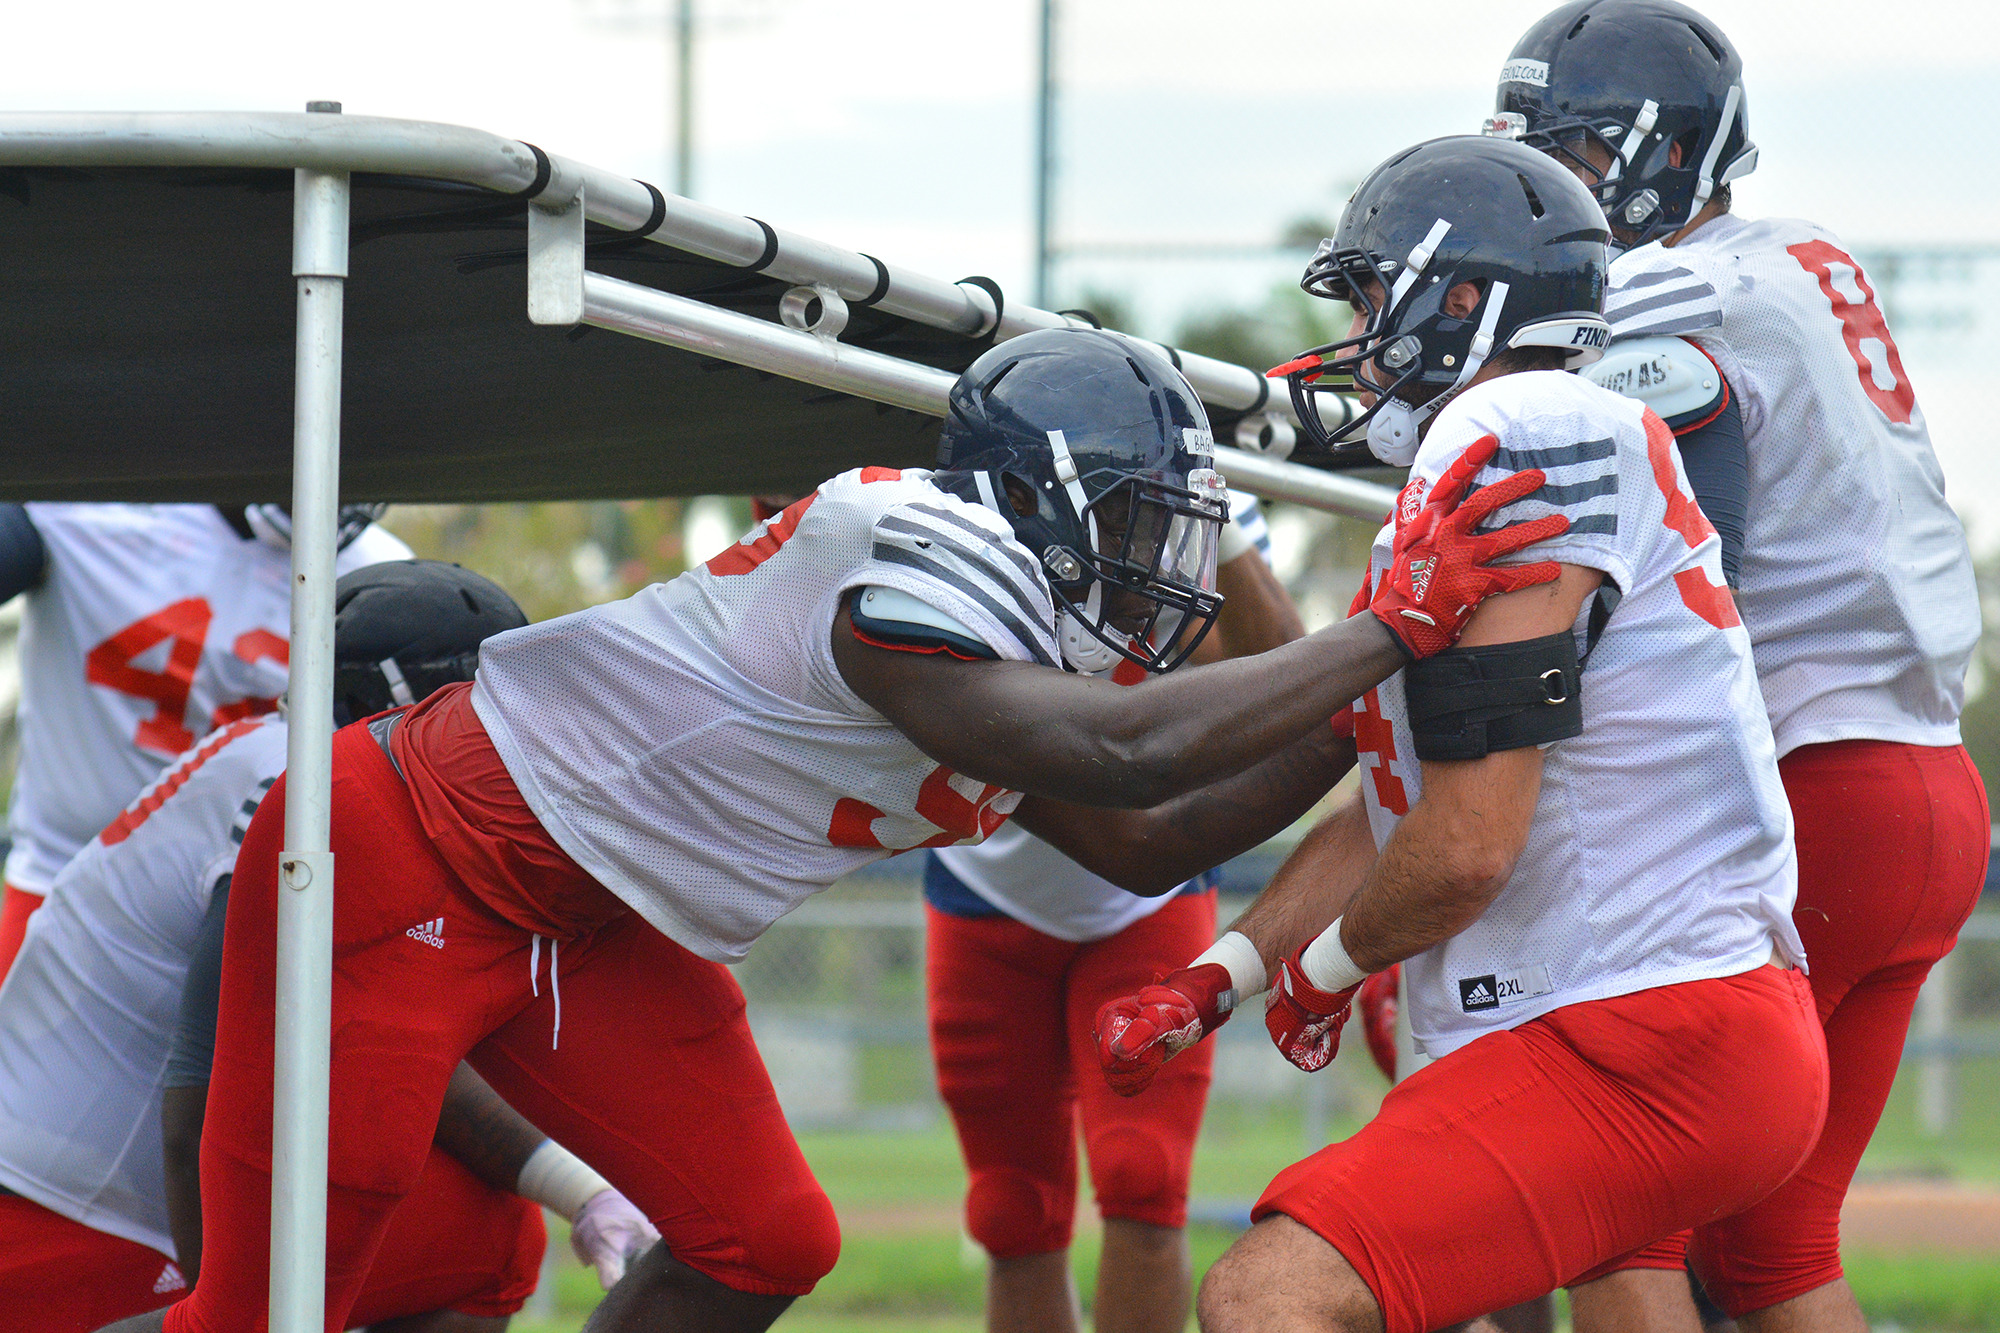 Tuesday S Fau Football Practice The First In Full Pads Florida